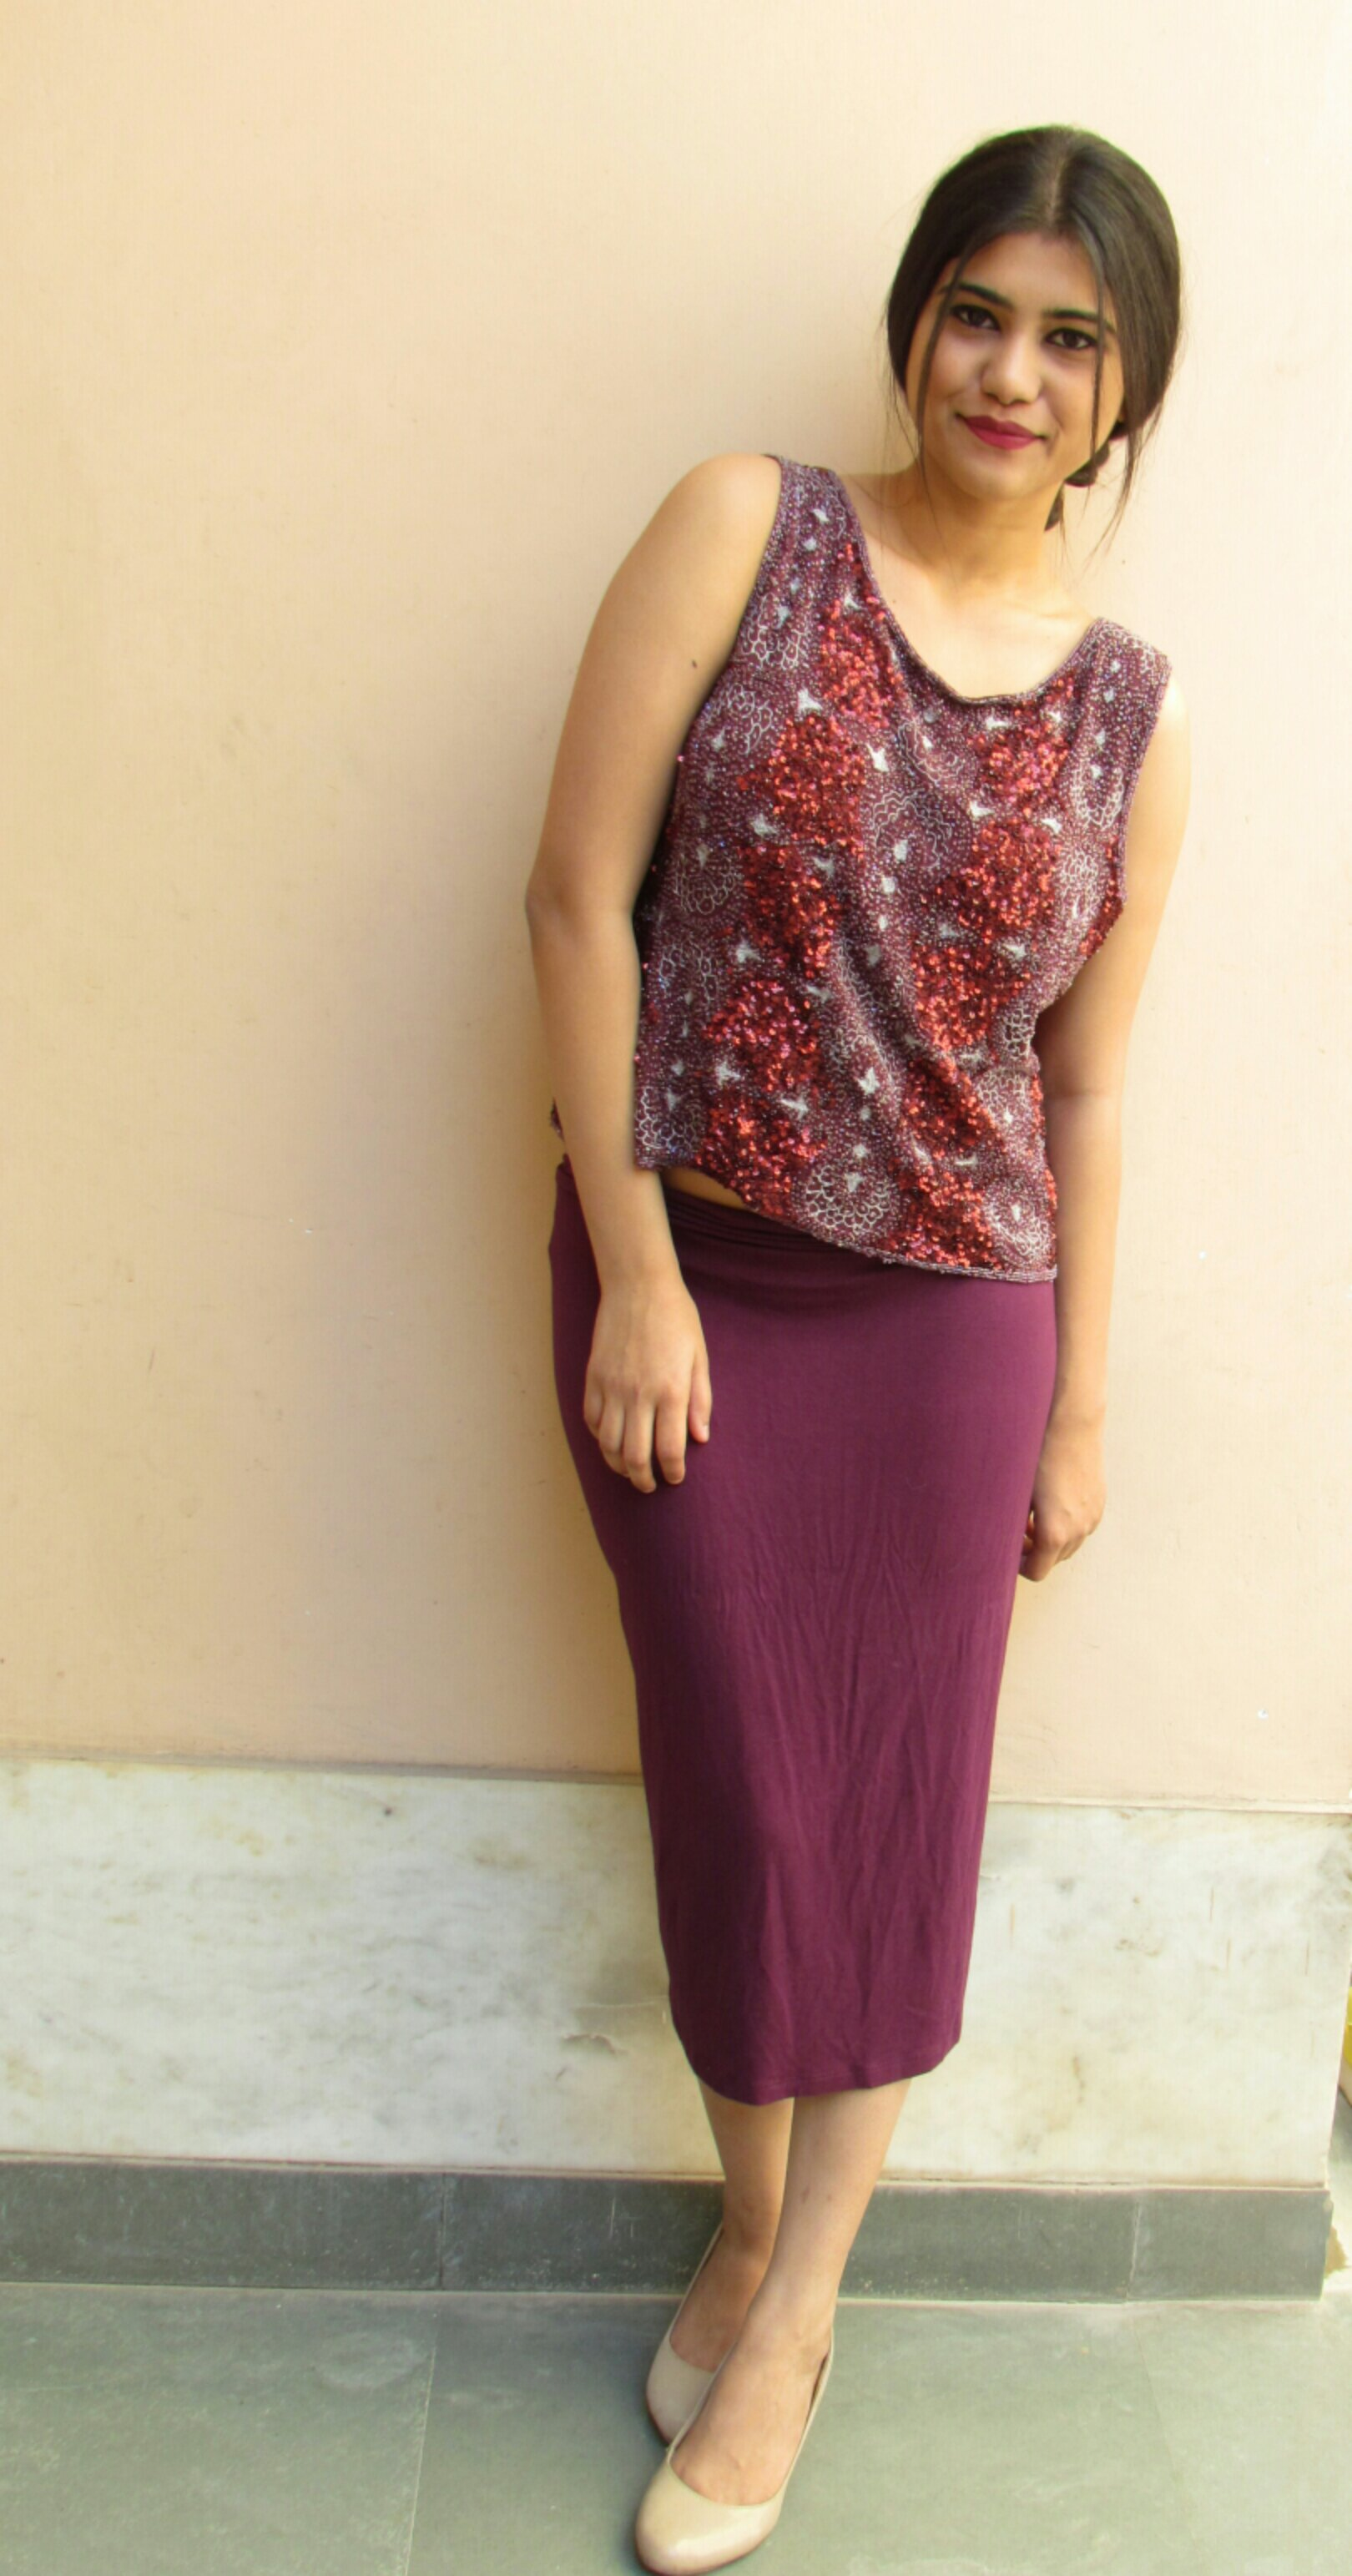 Maroon Pencil Skirt Outfit – images free download